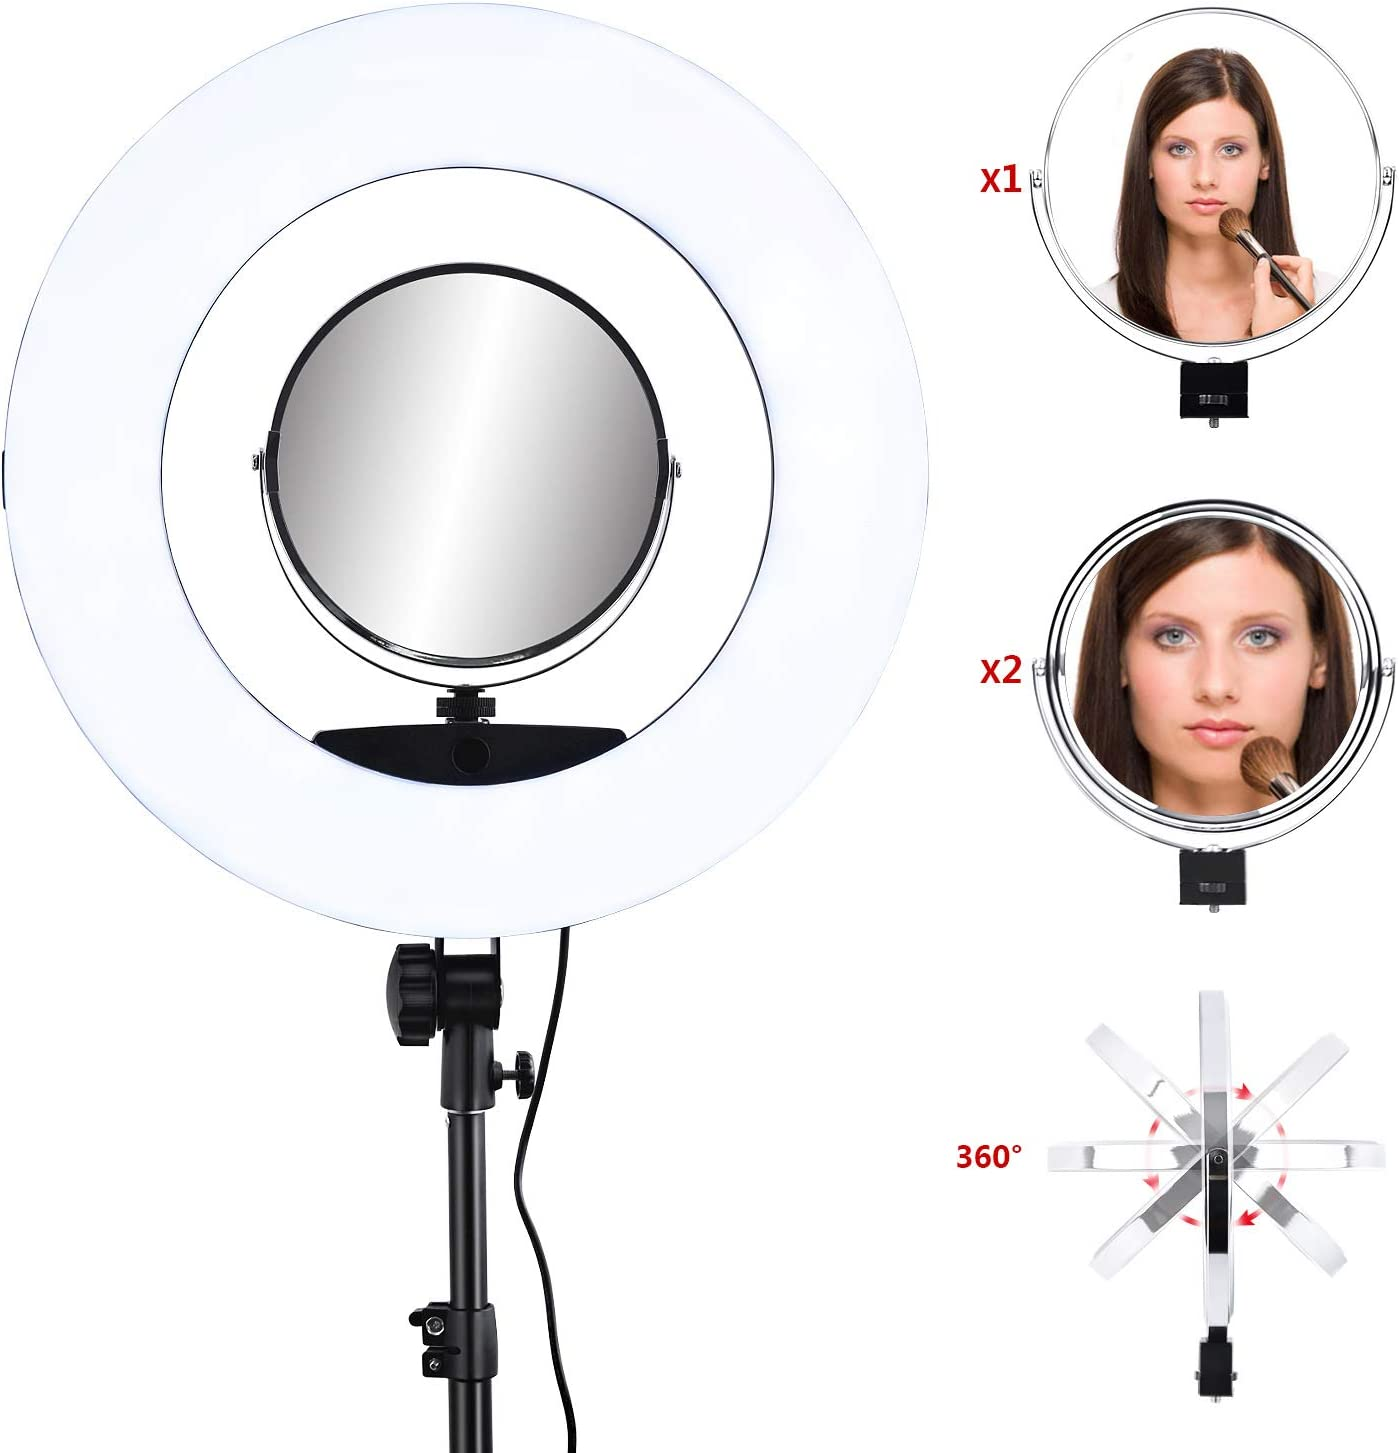 HUIGE 45cm Outer 84W 5500K//3200K Dimmable LED Video Lighting kit Stand Phone Adapter Carrying Bag for Makeup Video Shooting Salon Portrait Selfie